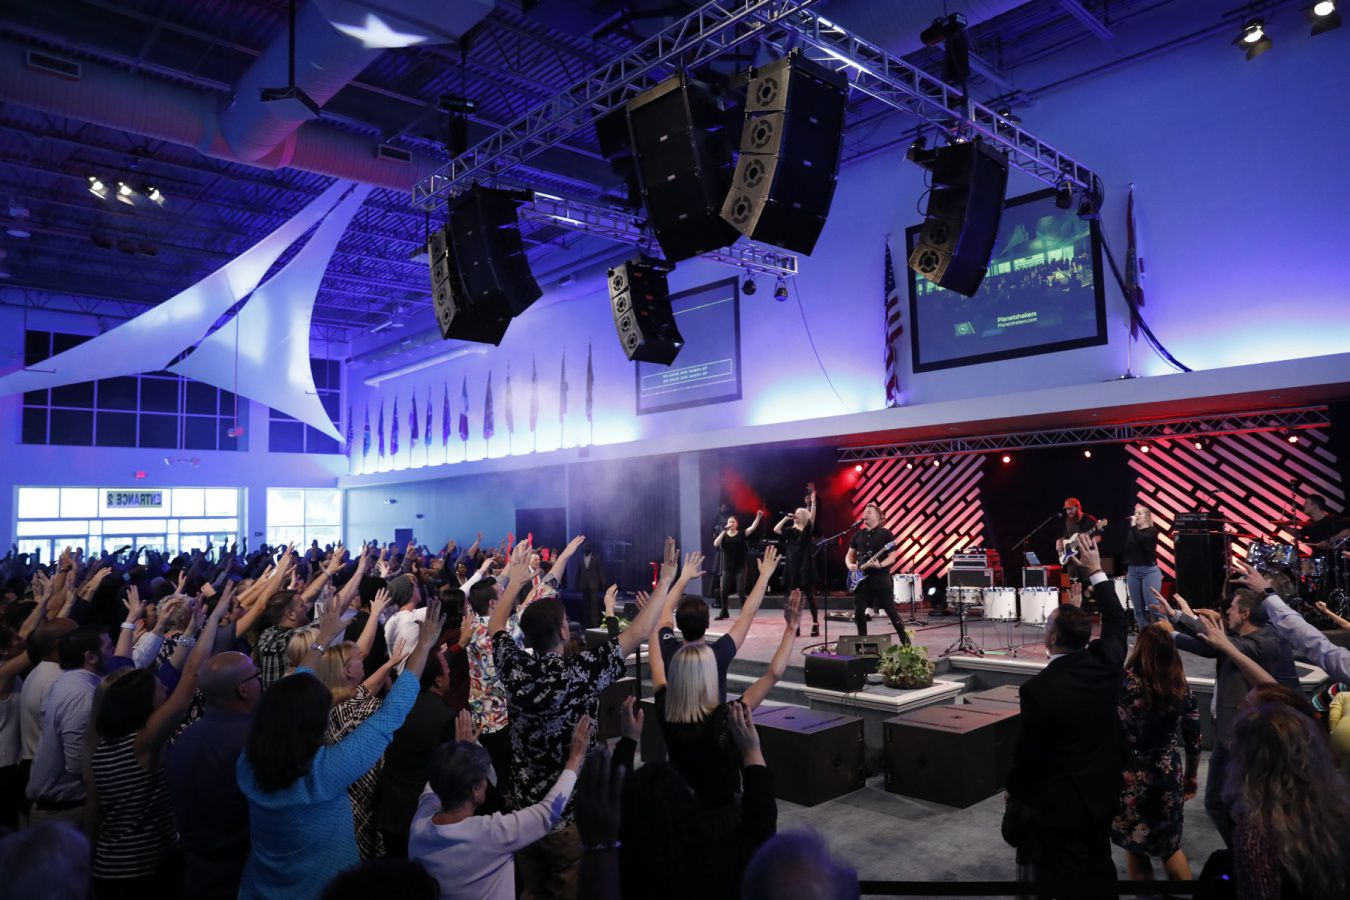 The Main Event with Planetshakers